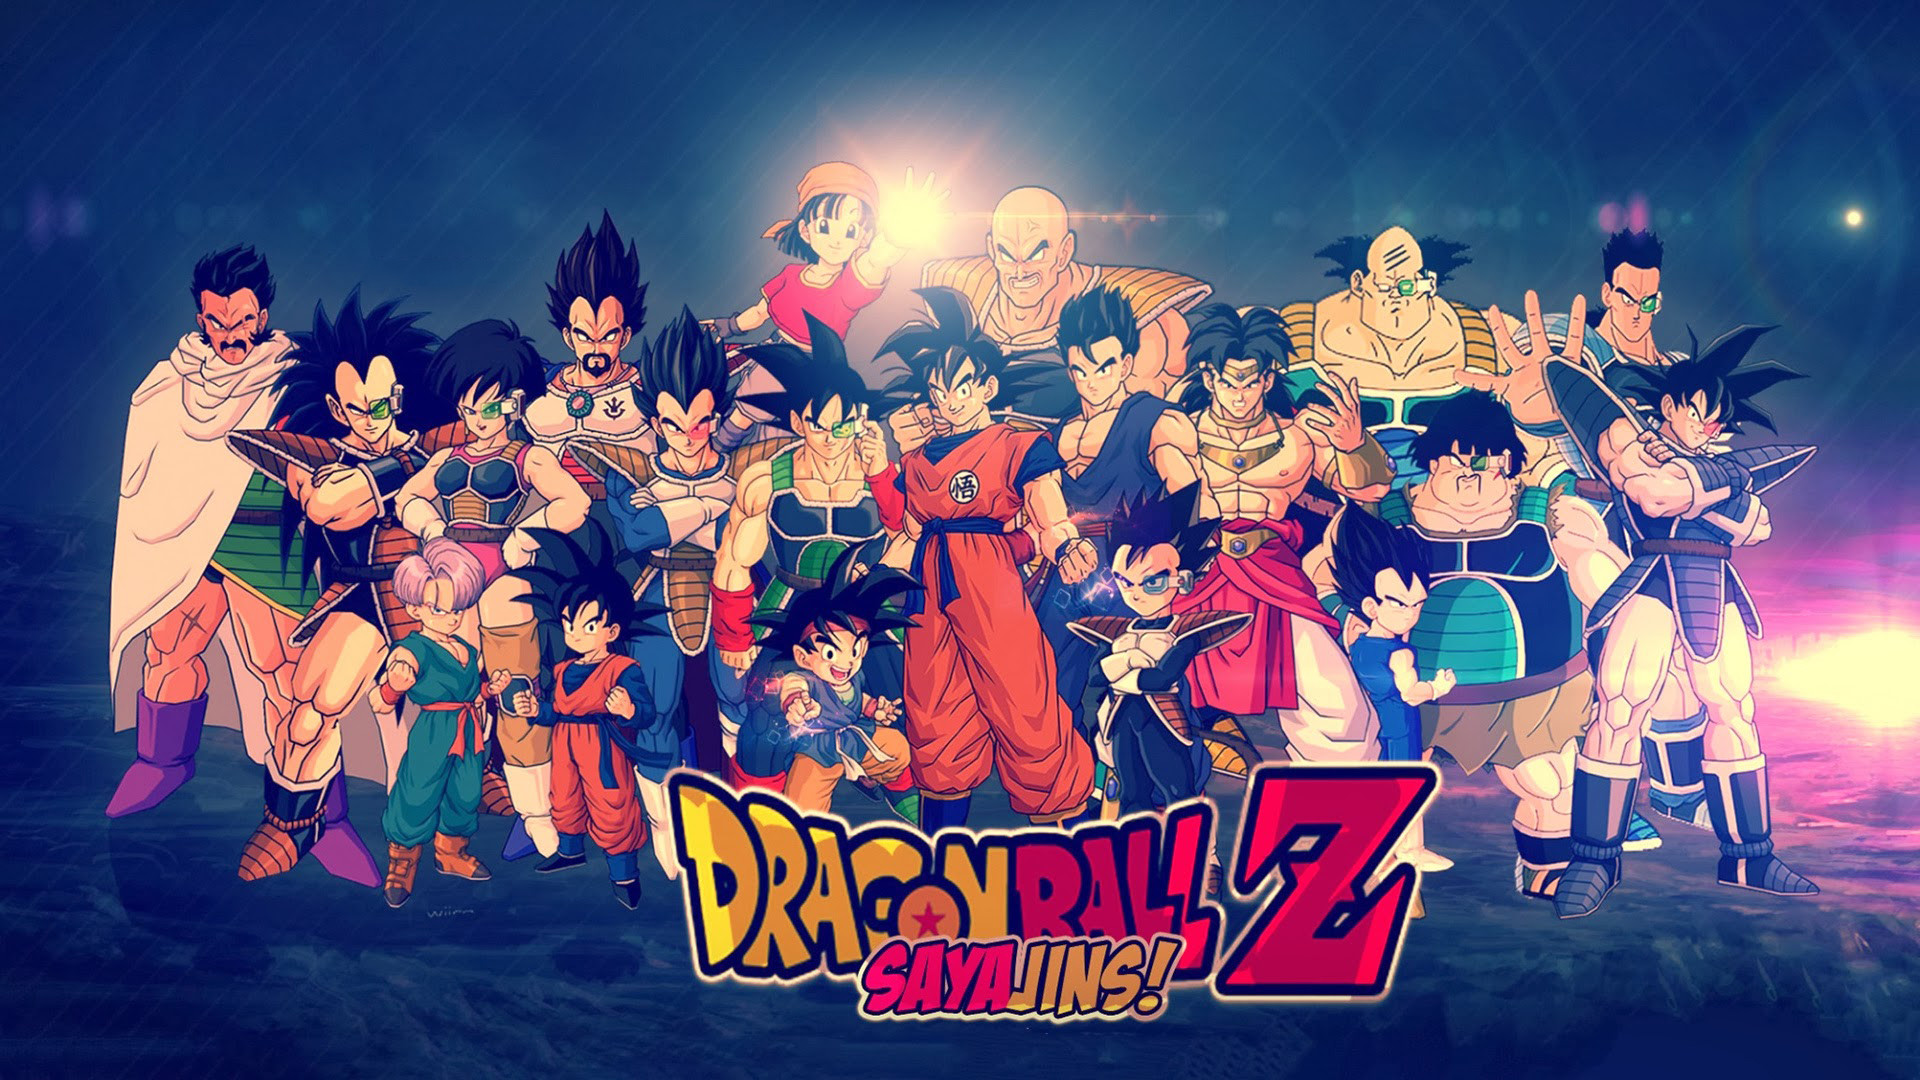 Search free dragon ball z wallpapers on zedge and personalize your phone to suit you. 4K Dragon Ball Z Wallpaper (60+ images)